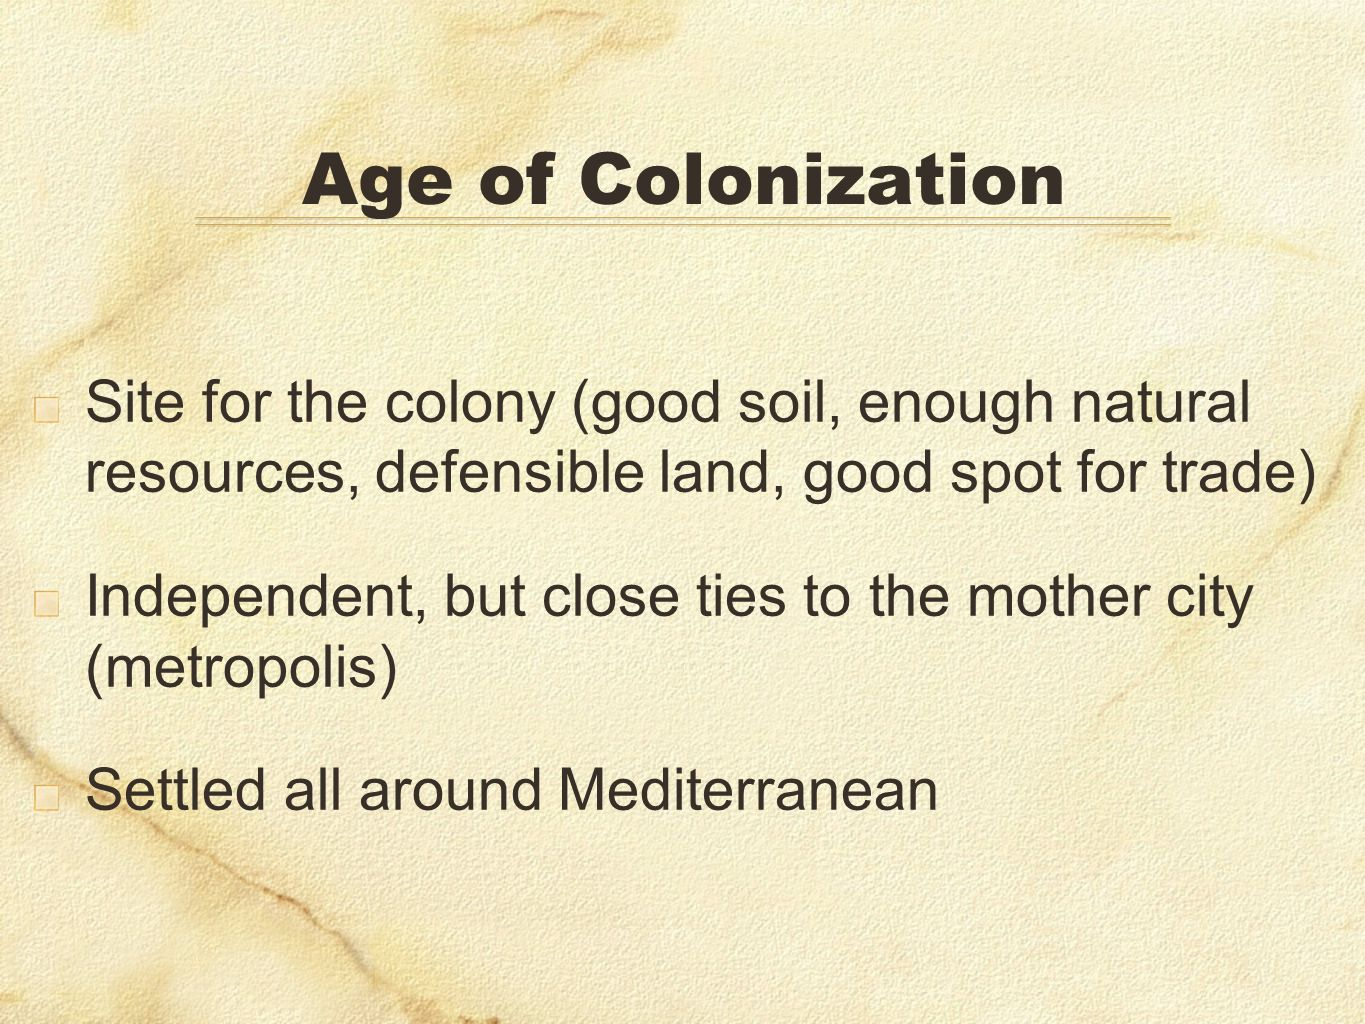 Age of Colonization Site for the colony (good soil, enough natural resources, defensible land, good spot for trade)